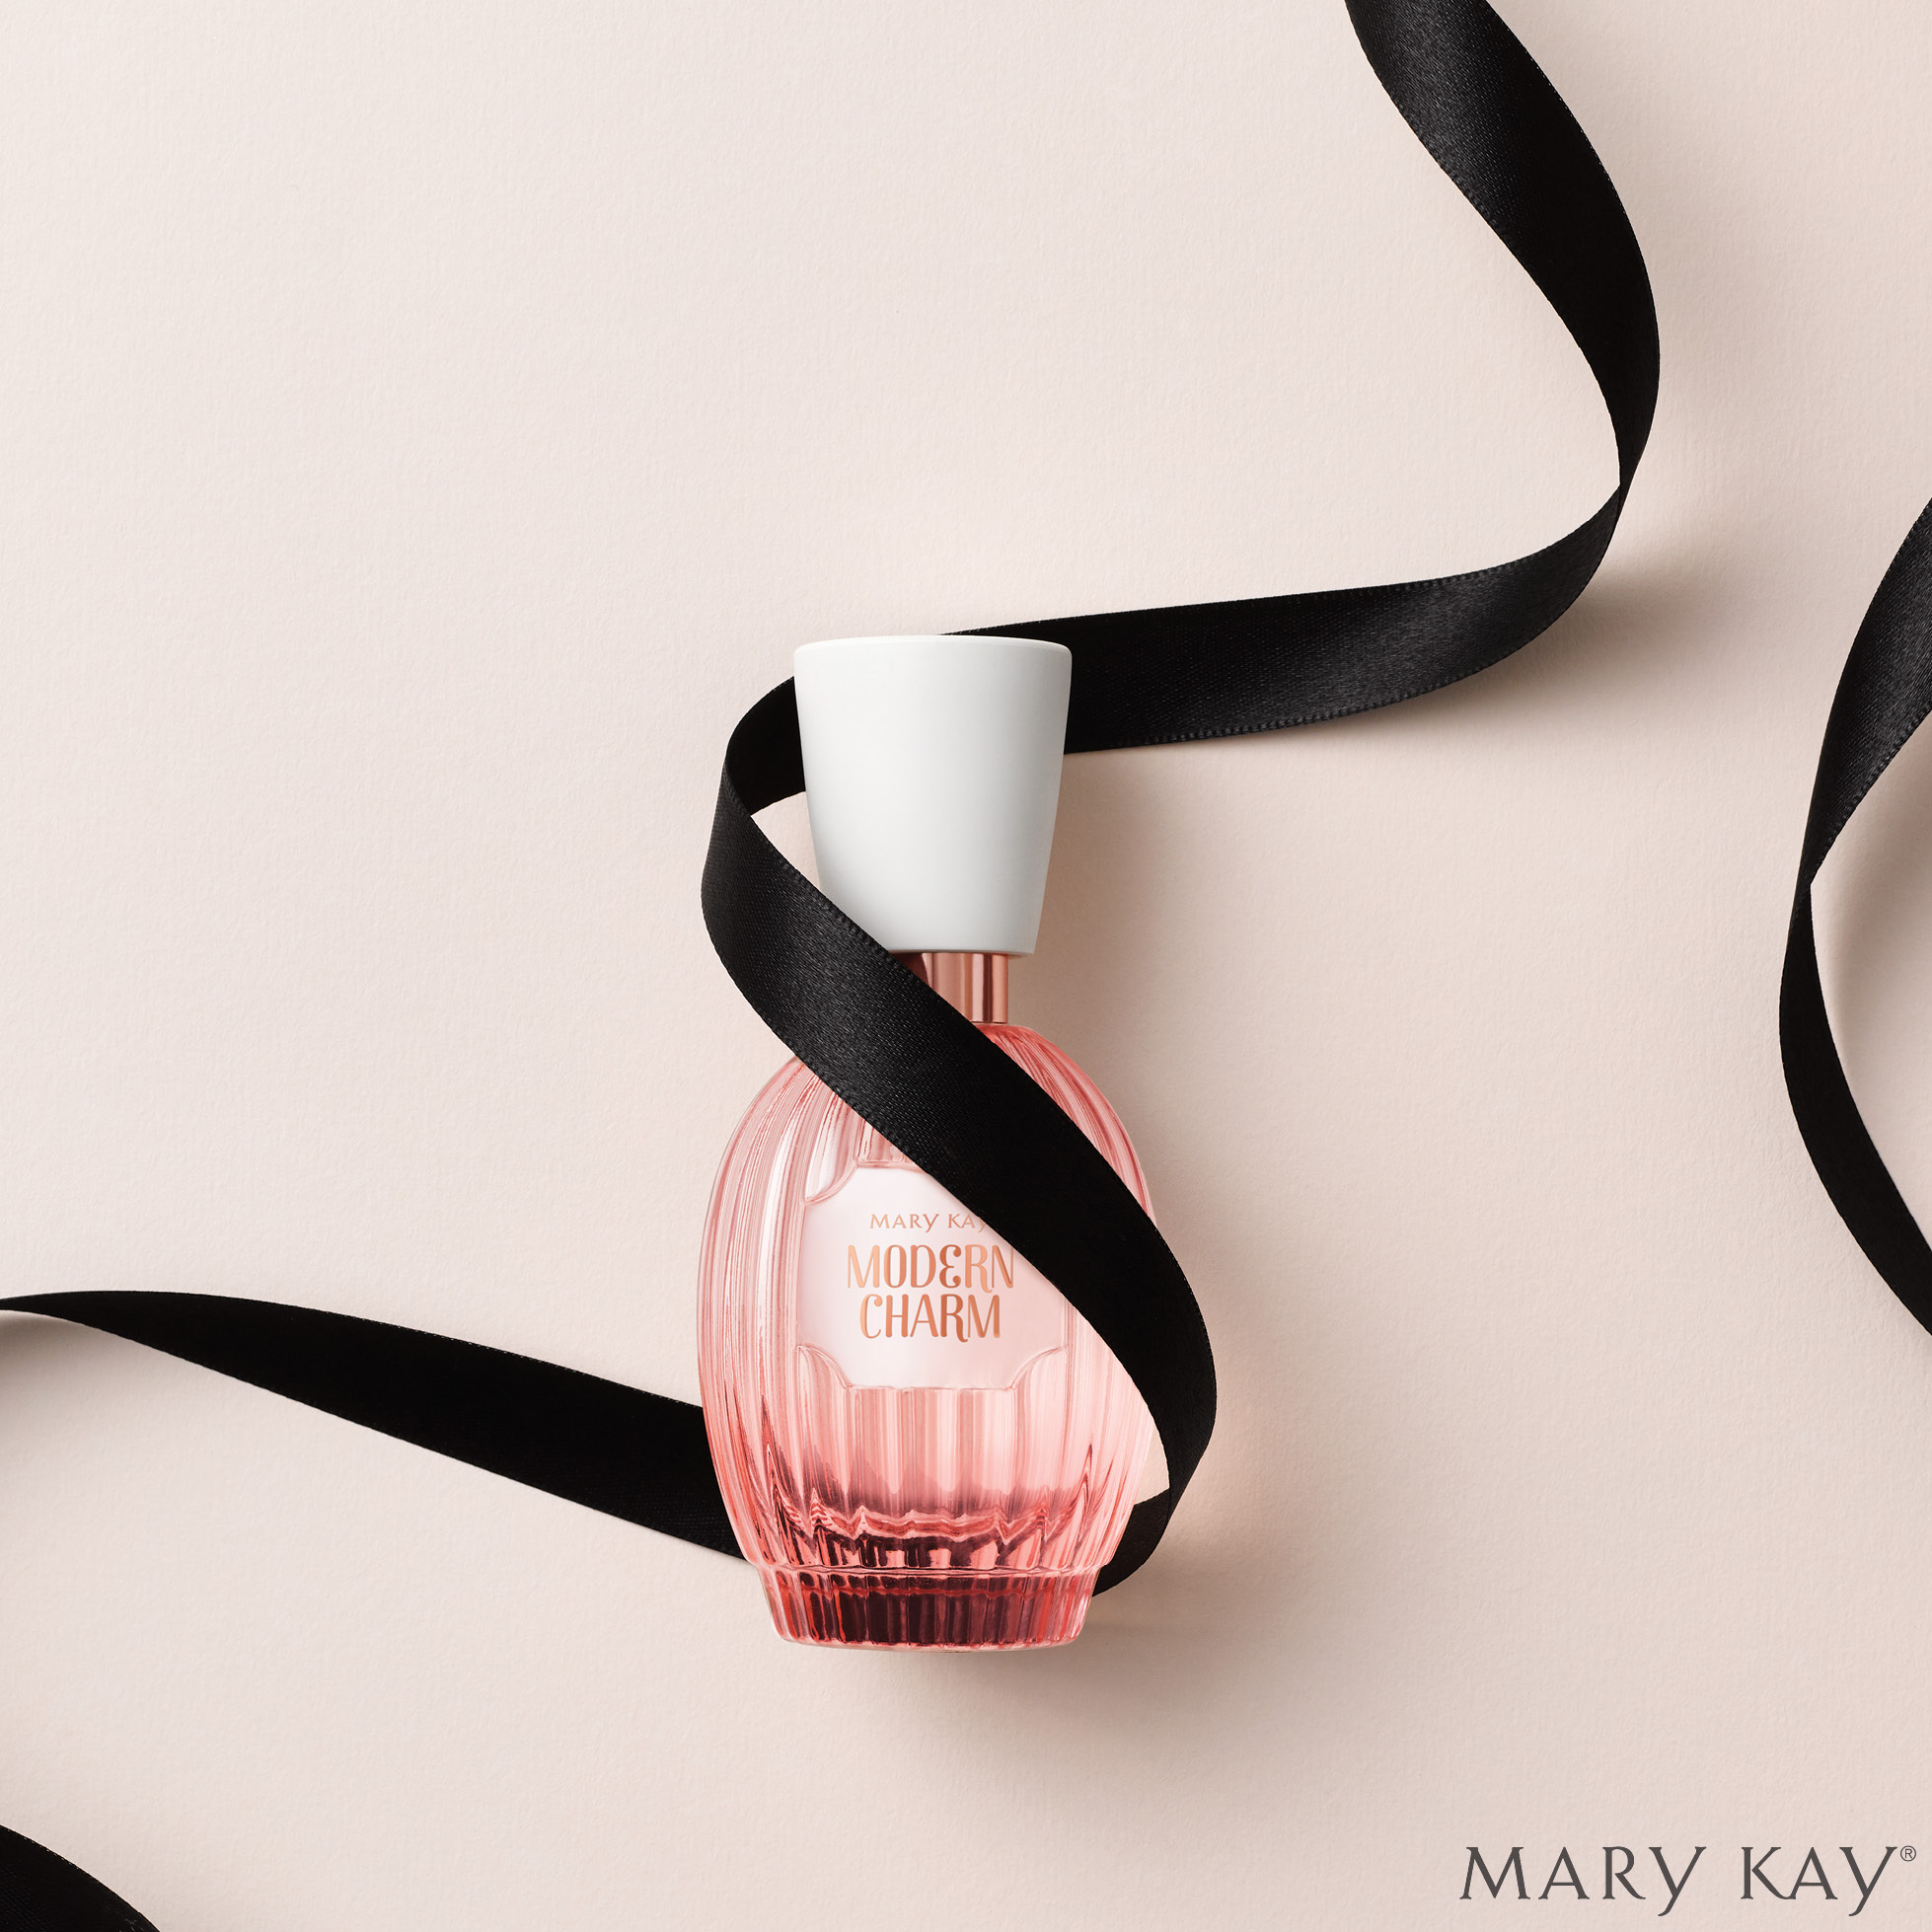 mary-kay-modern-charm-post-launch-gifting-4.jpg